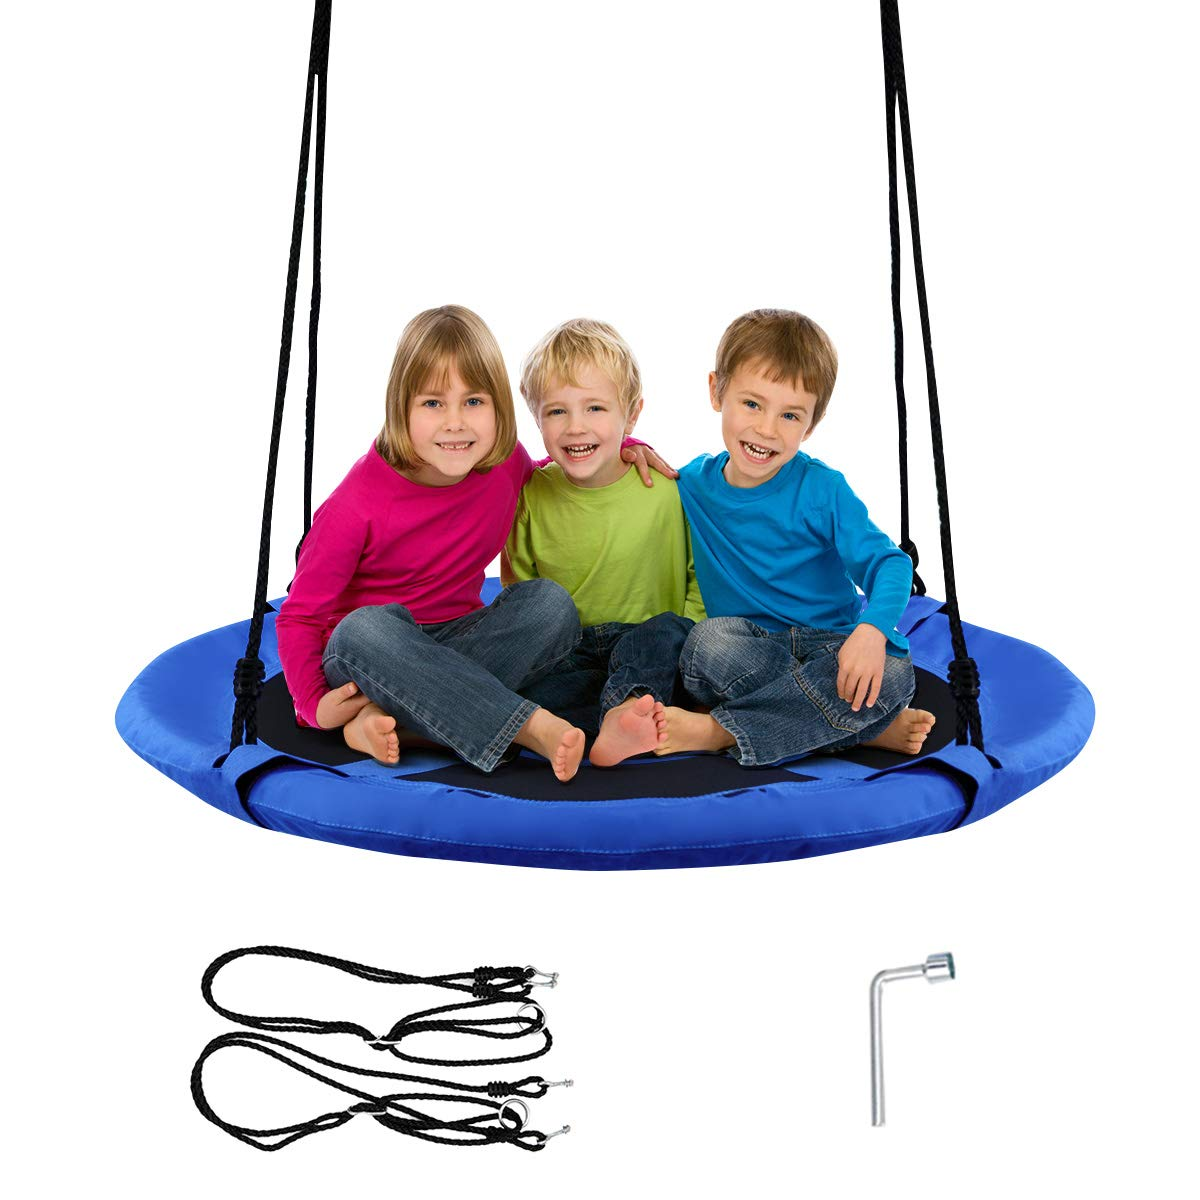 Costzon 40'' Waterproof Saucer Tree Swing Set, Outdoor Round Swing - Adjustable Hanging Ropes, Safe and Sturdy Swing for Children Park Backyard (Blue) by Costzon